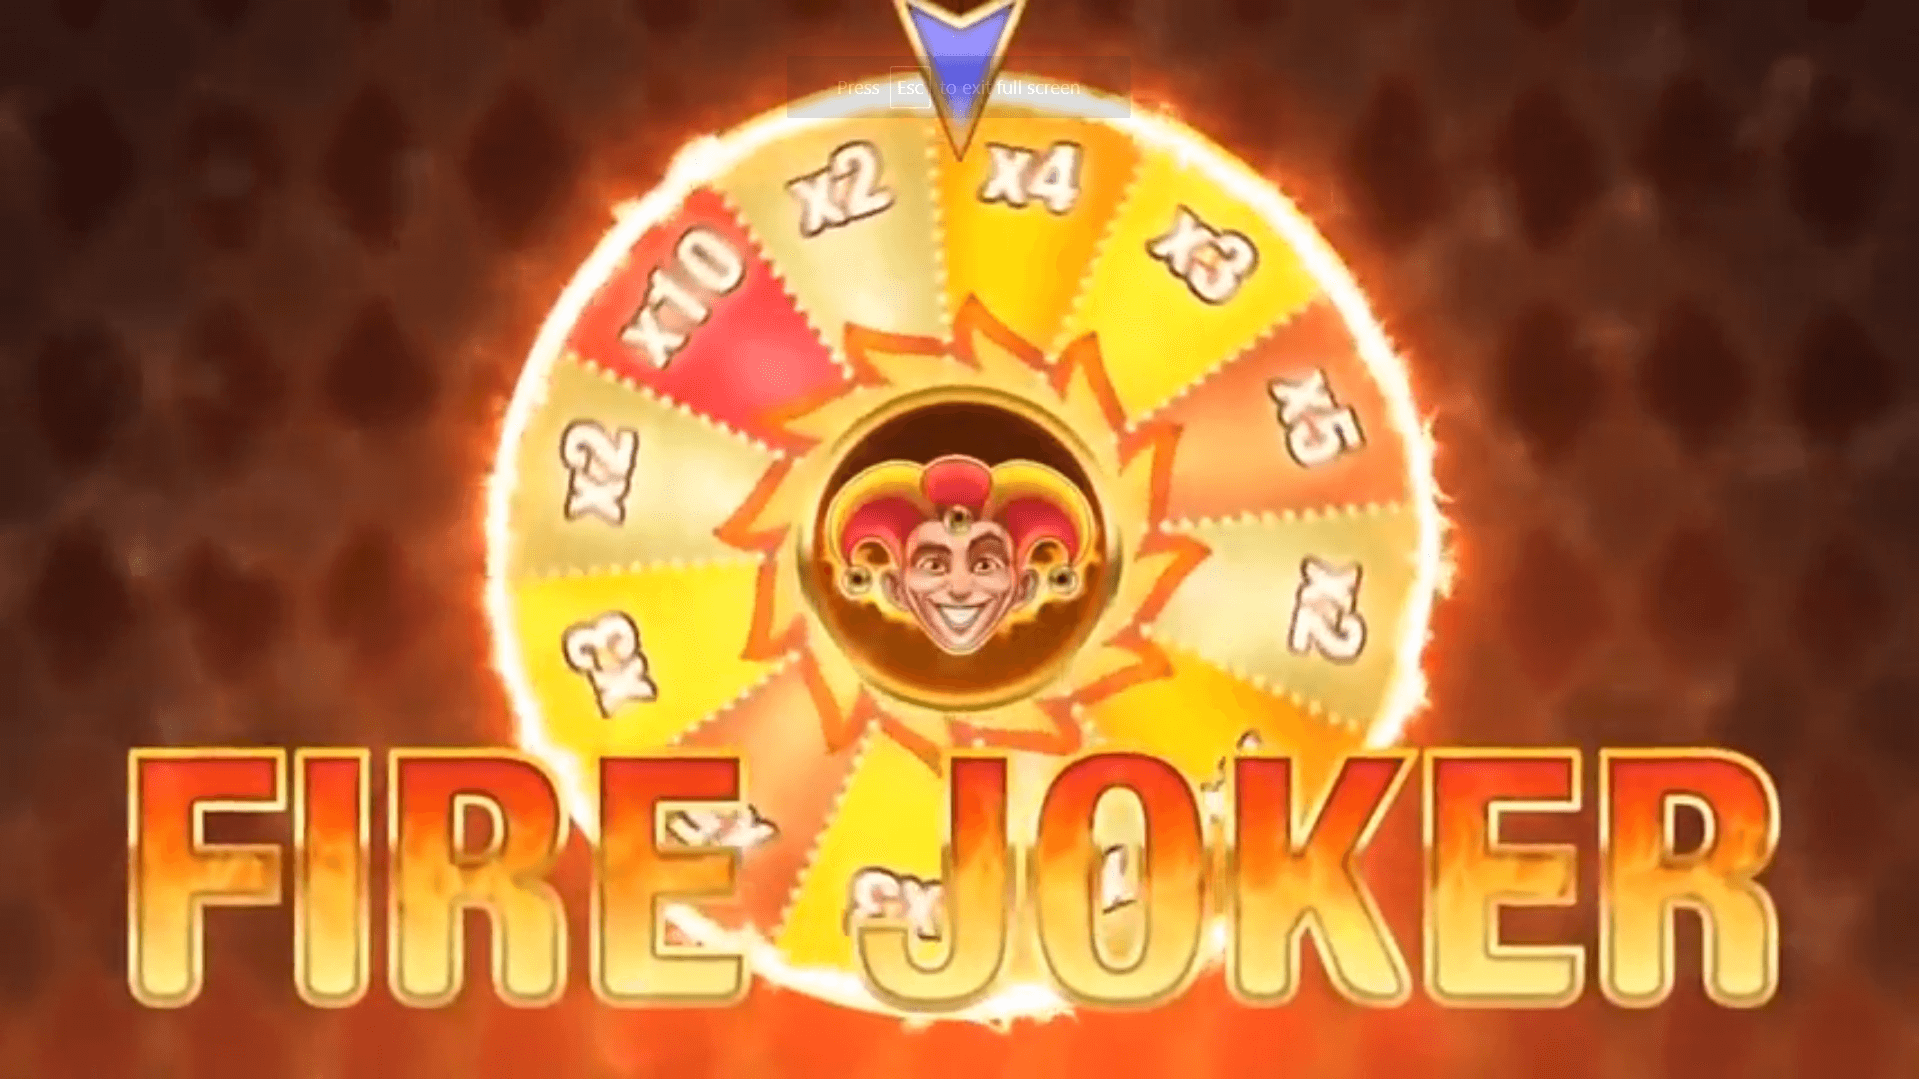 Fire Joker slot: Play with $3000 Free Bonus! - YummySpins